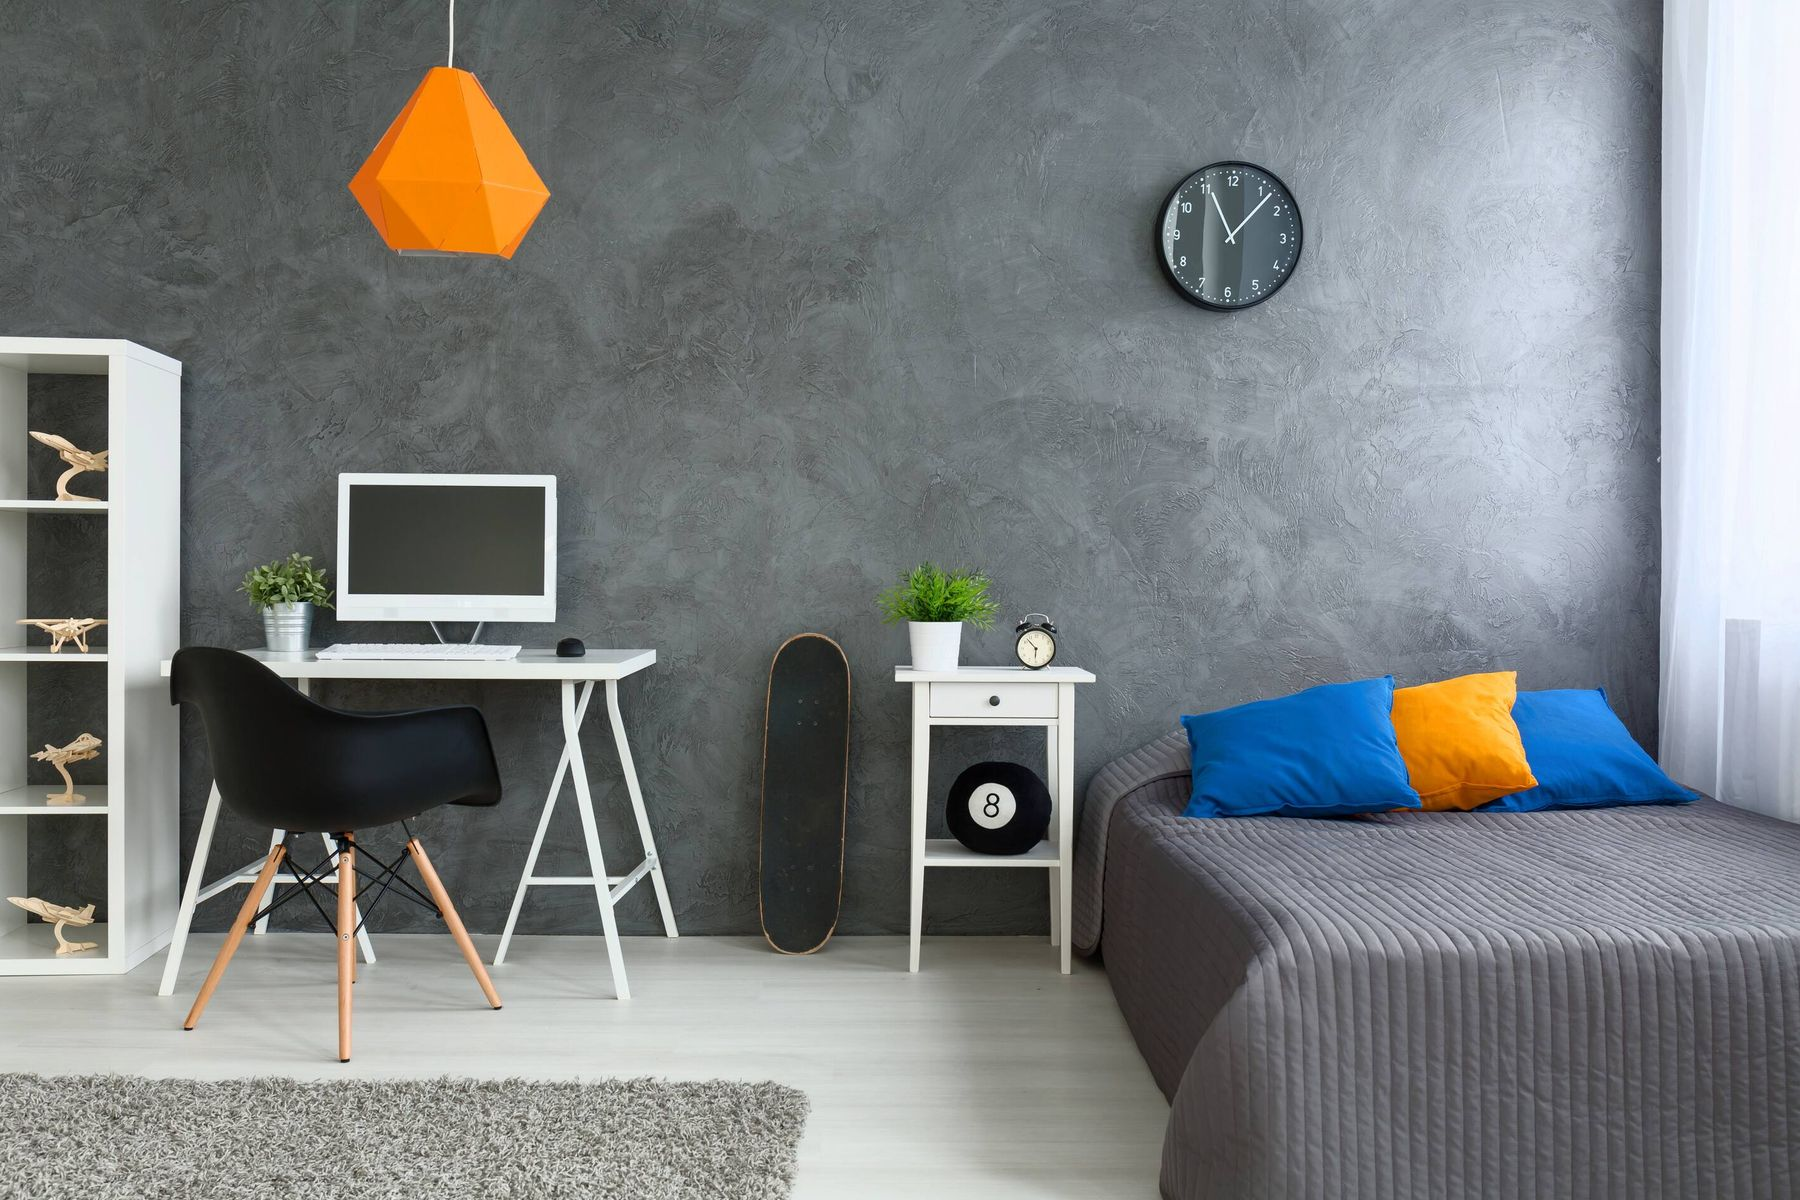 Cleaning Tips to Remove Messy Hand Stains From Your Bedroom Walls!